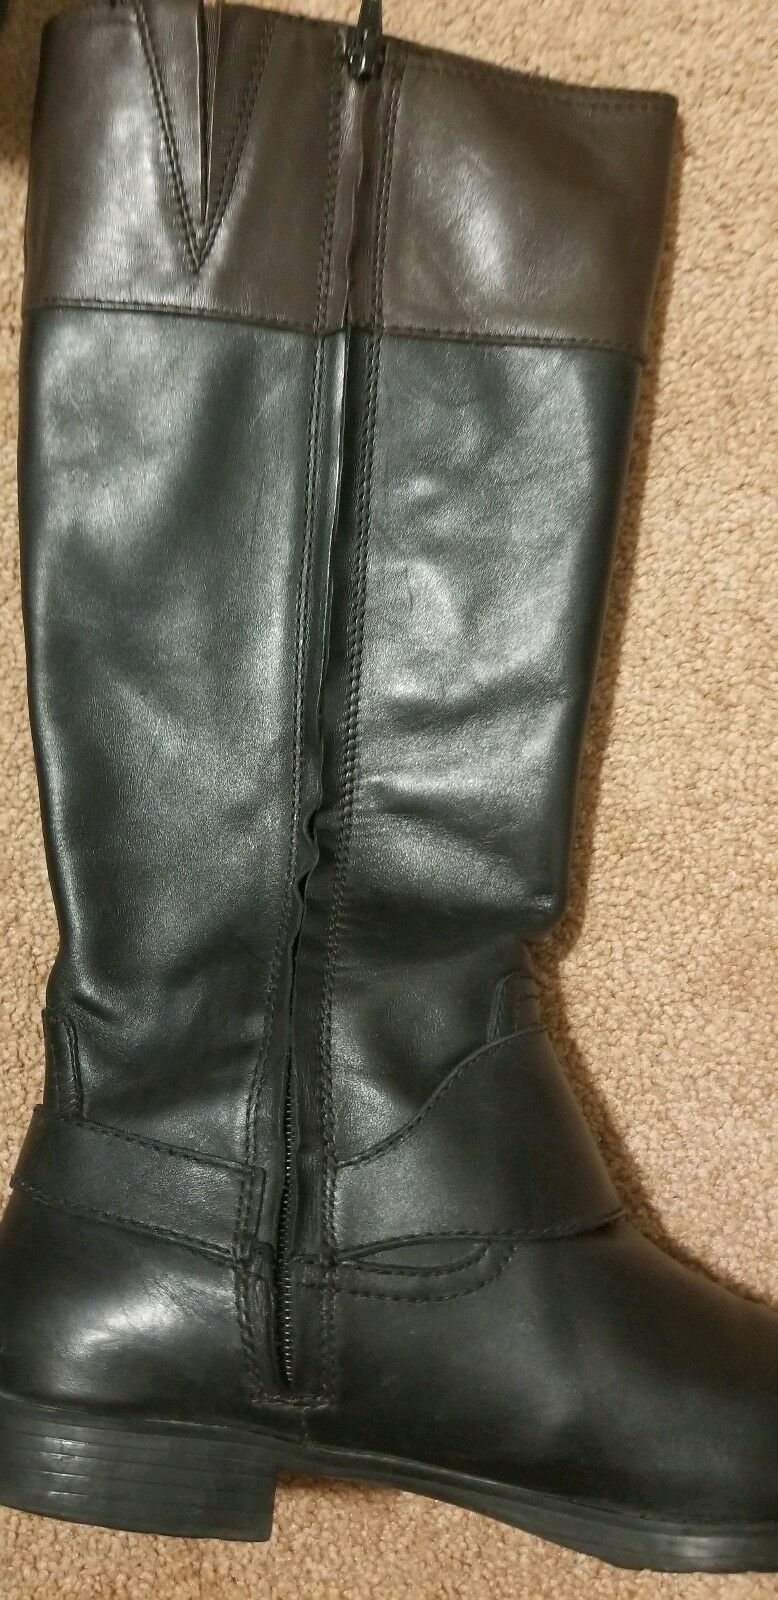 RALPH LAUREN SULITA Black w  Brown Top Leather Leather Leather Zipper Riding Boots Size 10 5b03e4